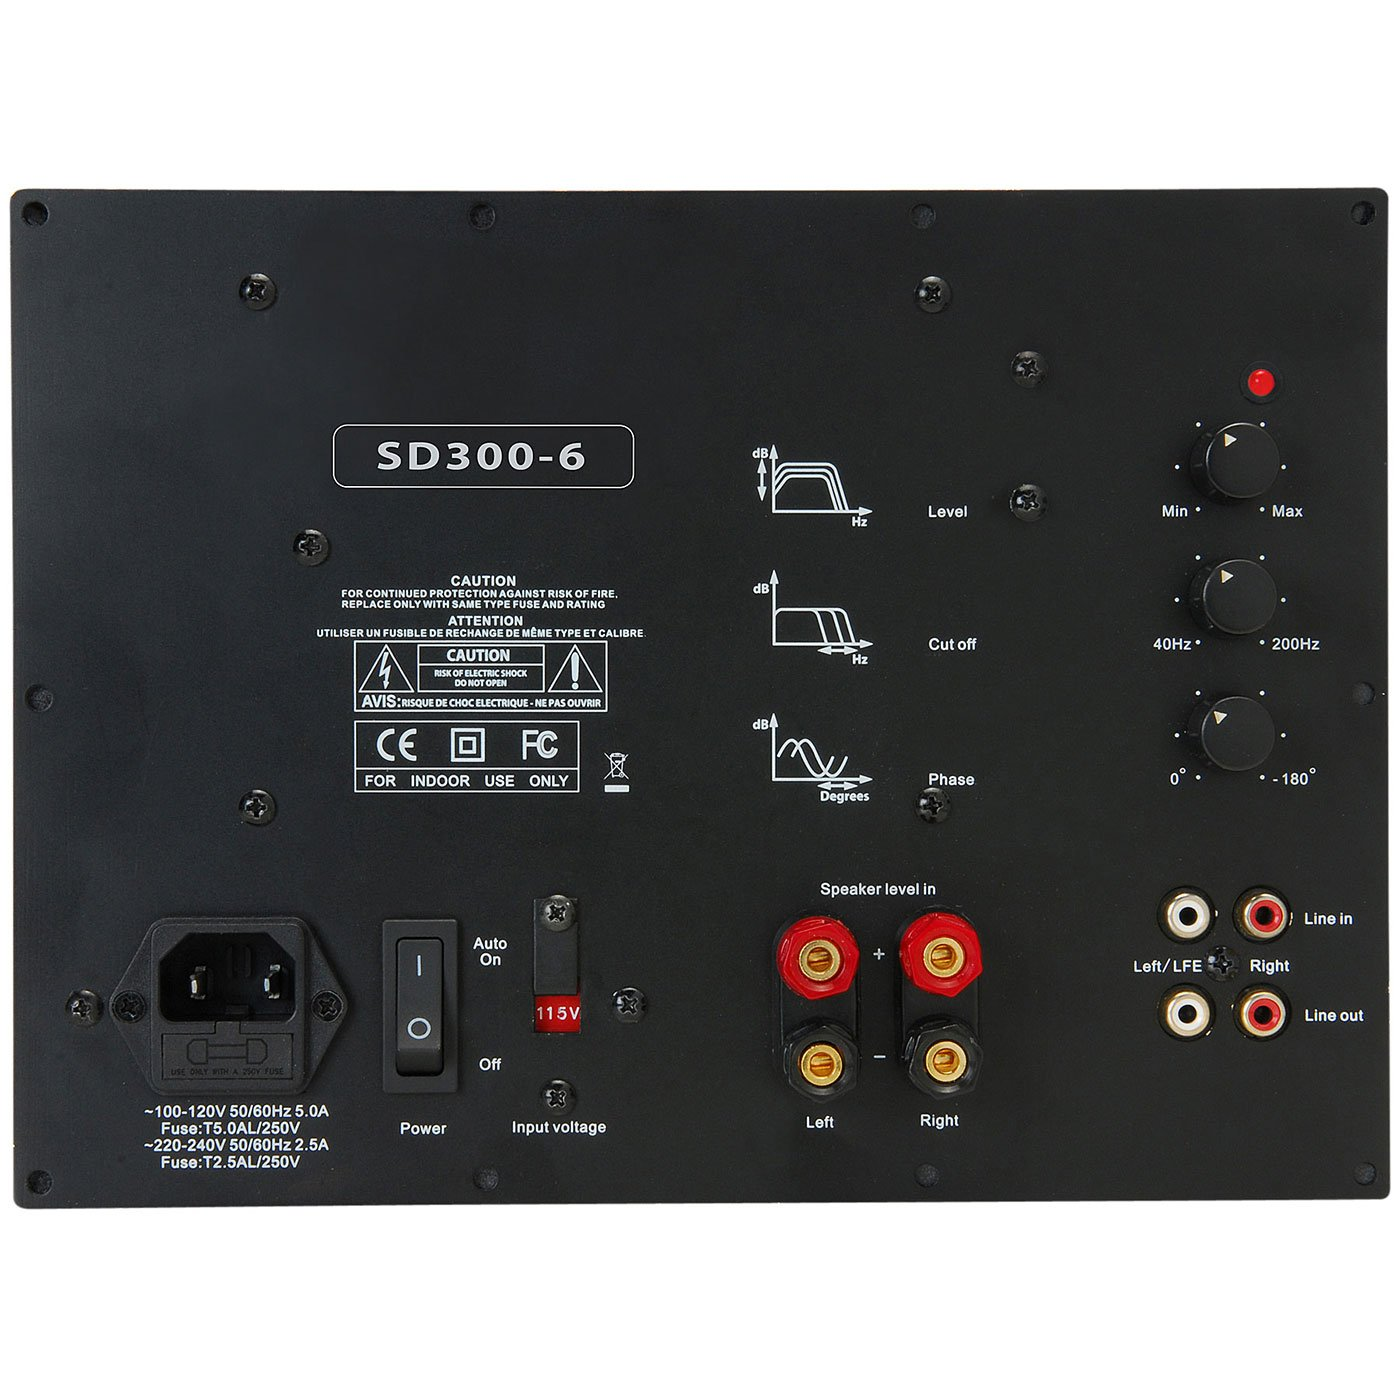 Yung SD300-6 300W Class D Subwoofer Plate Amplifier Module with 6 dB @ 30 Hz by Yung International